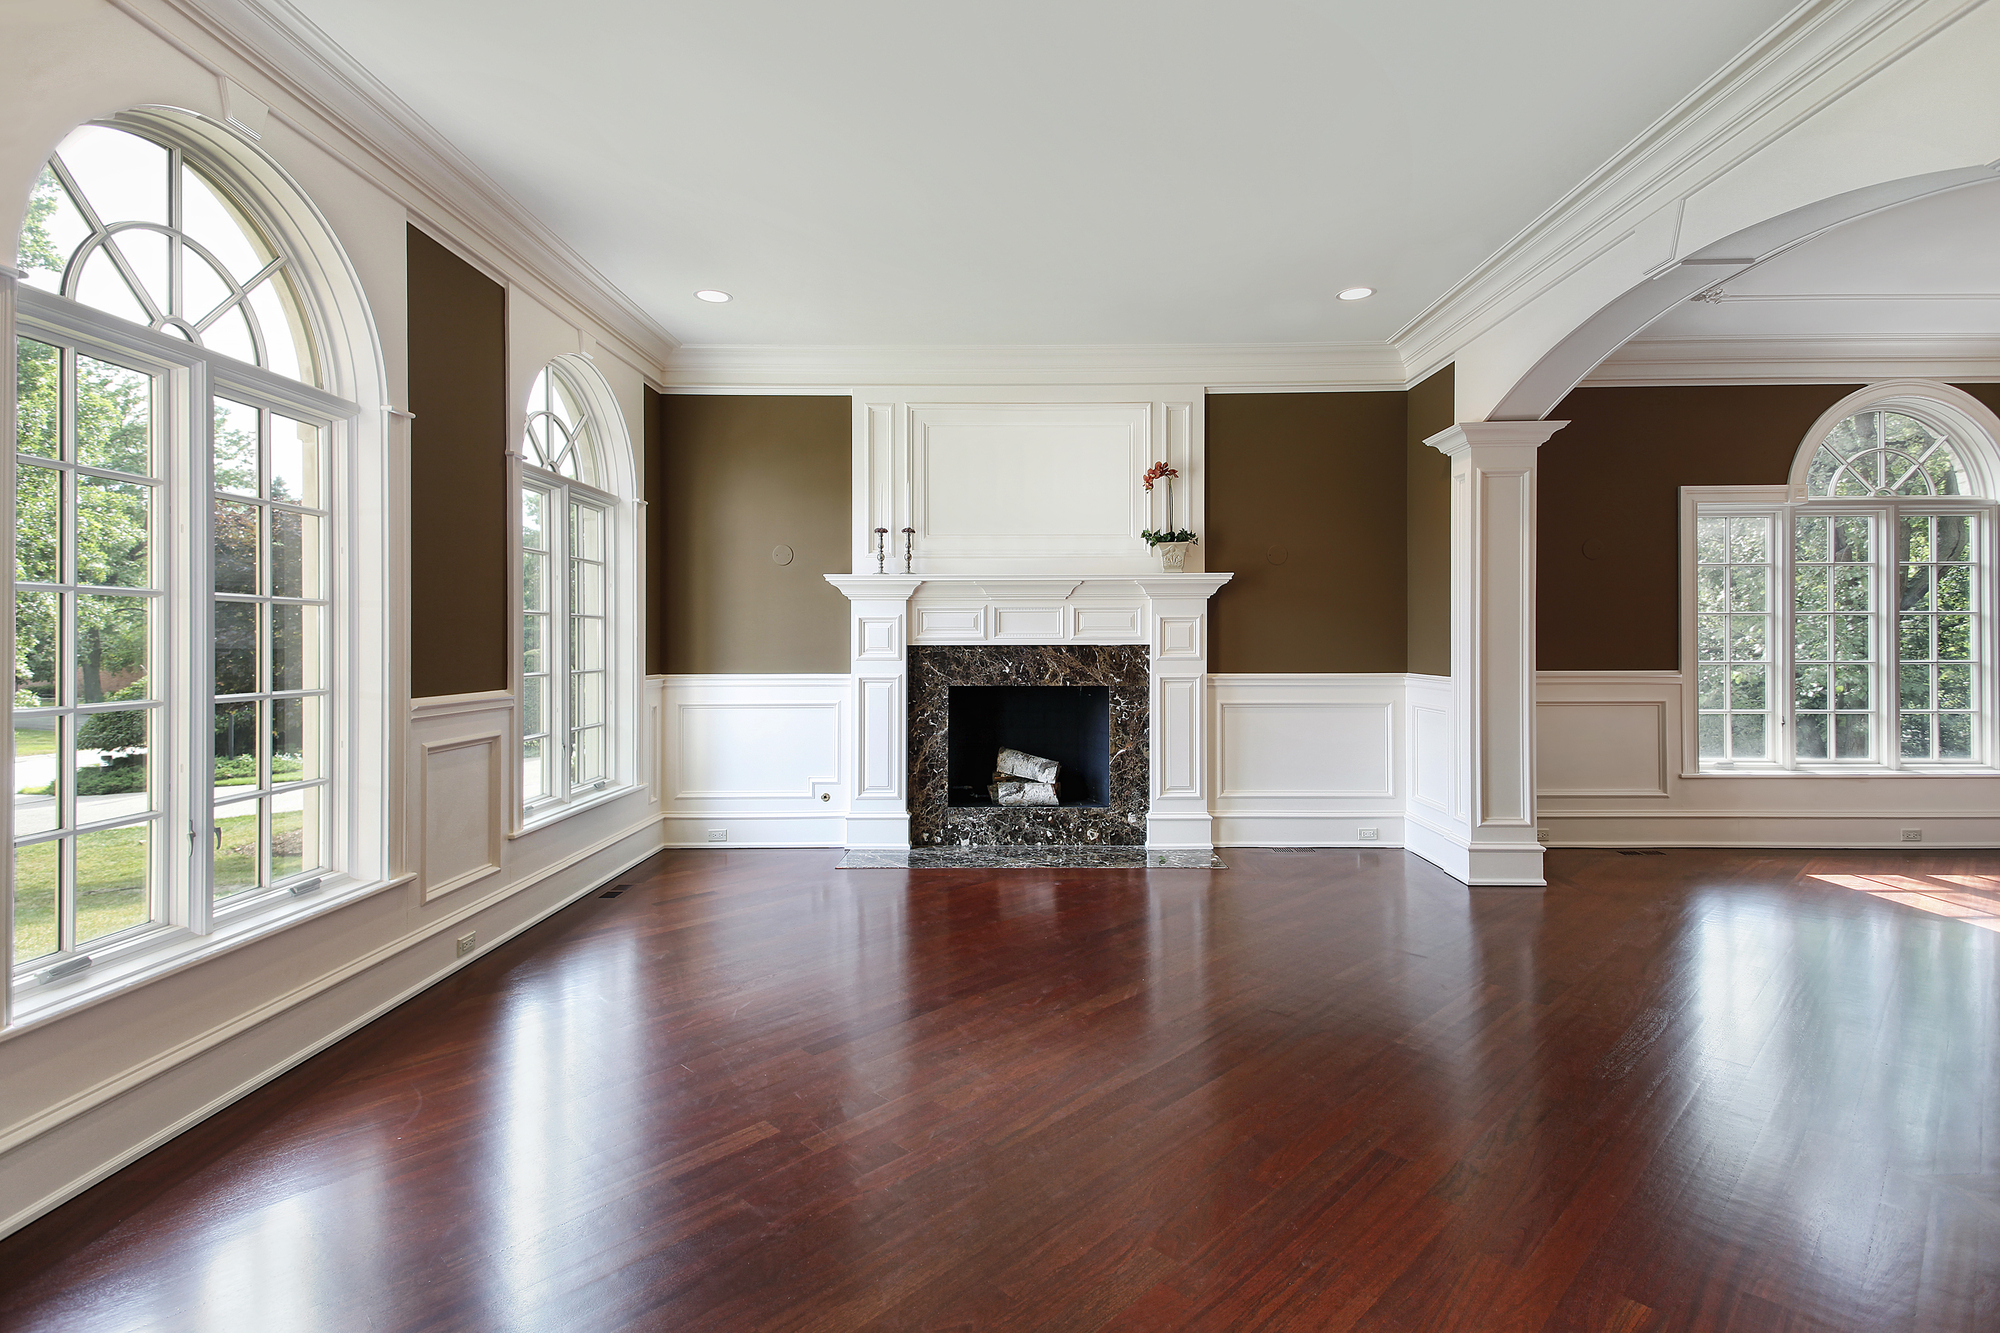 Novasteam is a Benton City professional hardwood floor cleaning services company